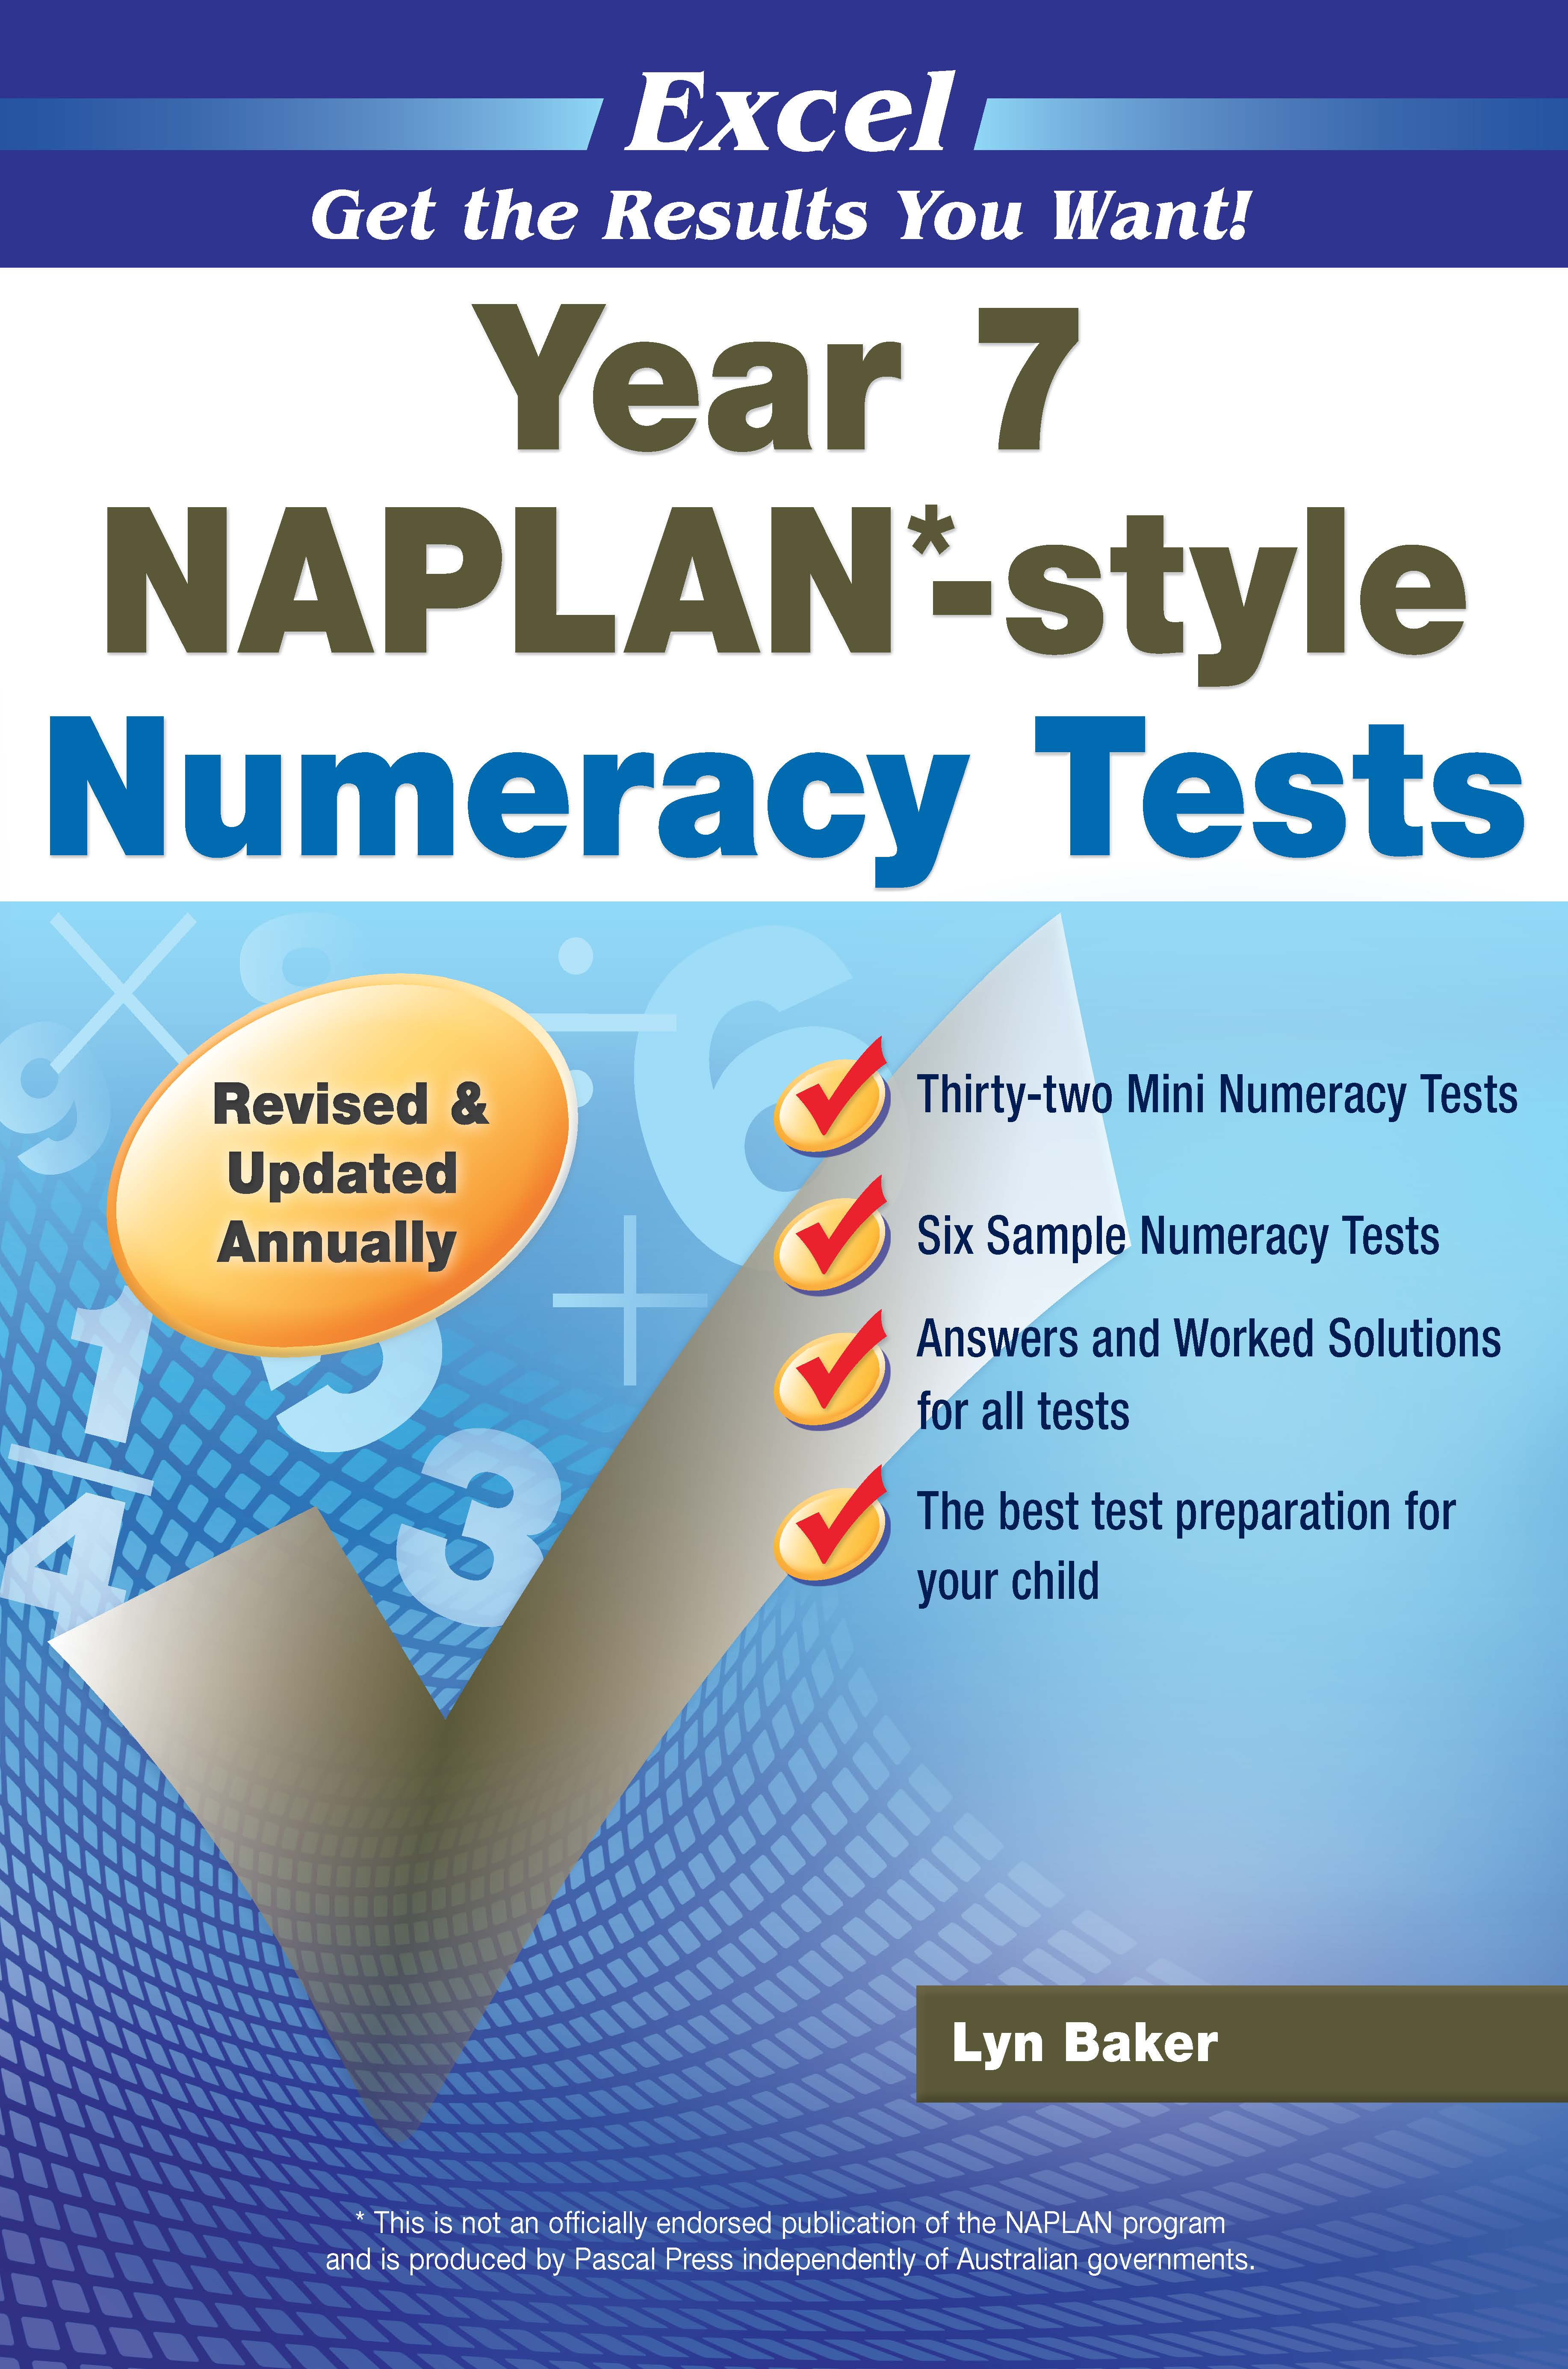 Excel NAPLAN*-style Numeracy Tests Year 7